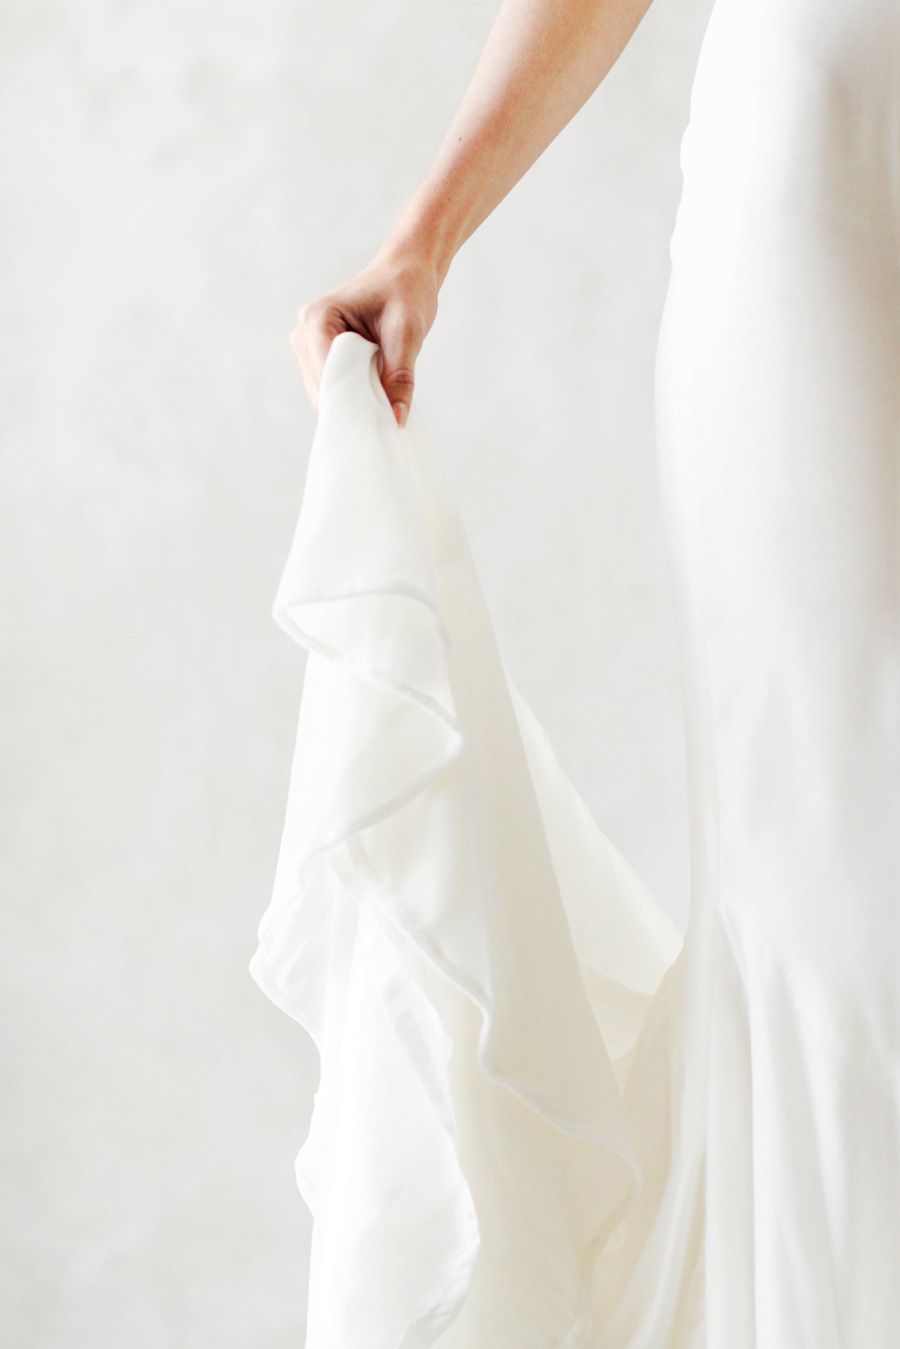 Advice on trying on wedding dresses, by Ailsa Munro on the English Wedding Blog (3)